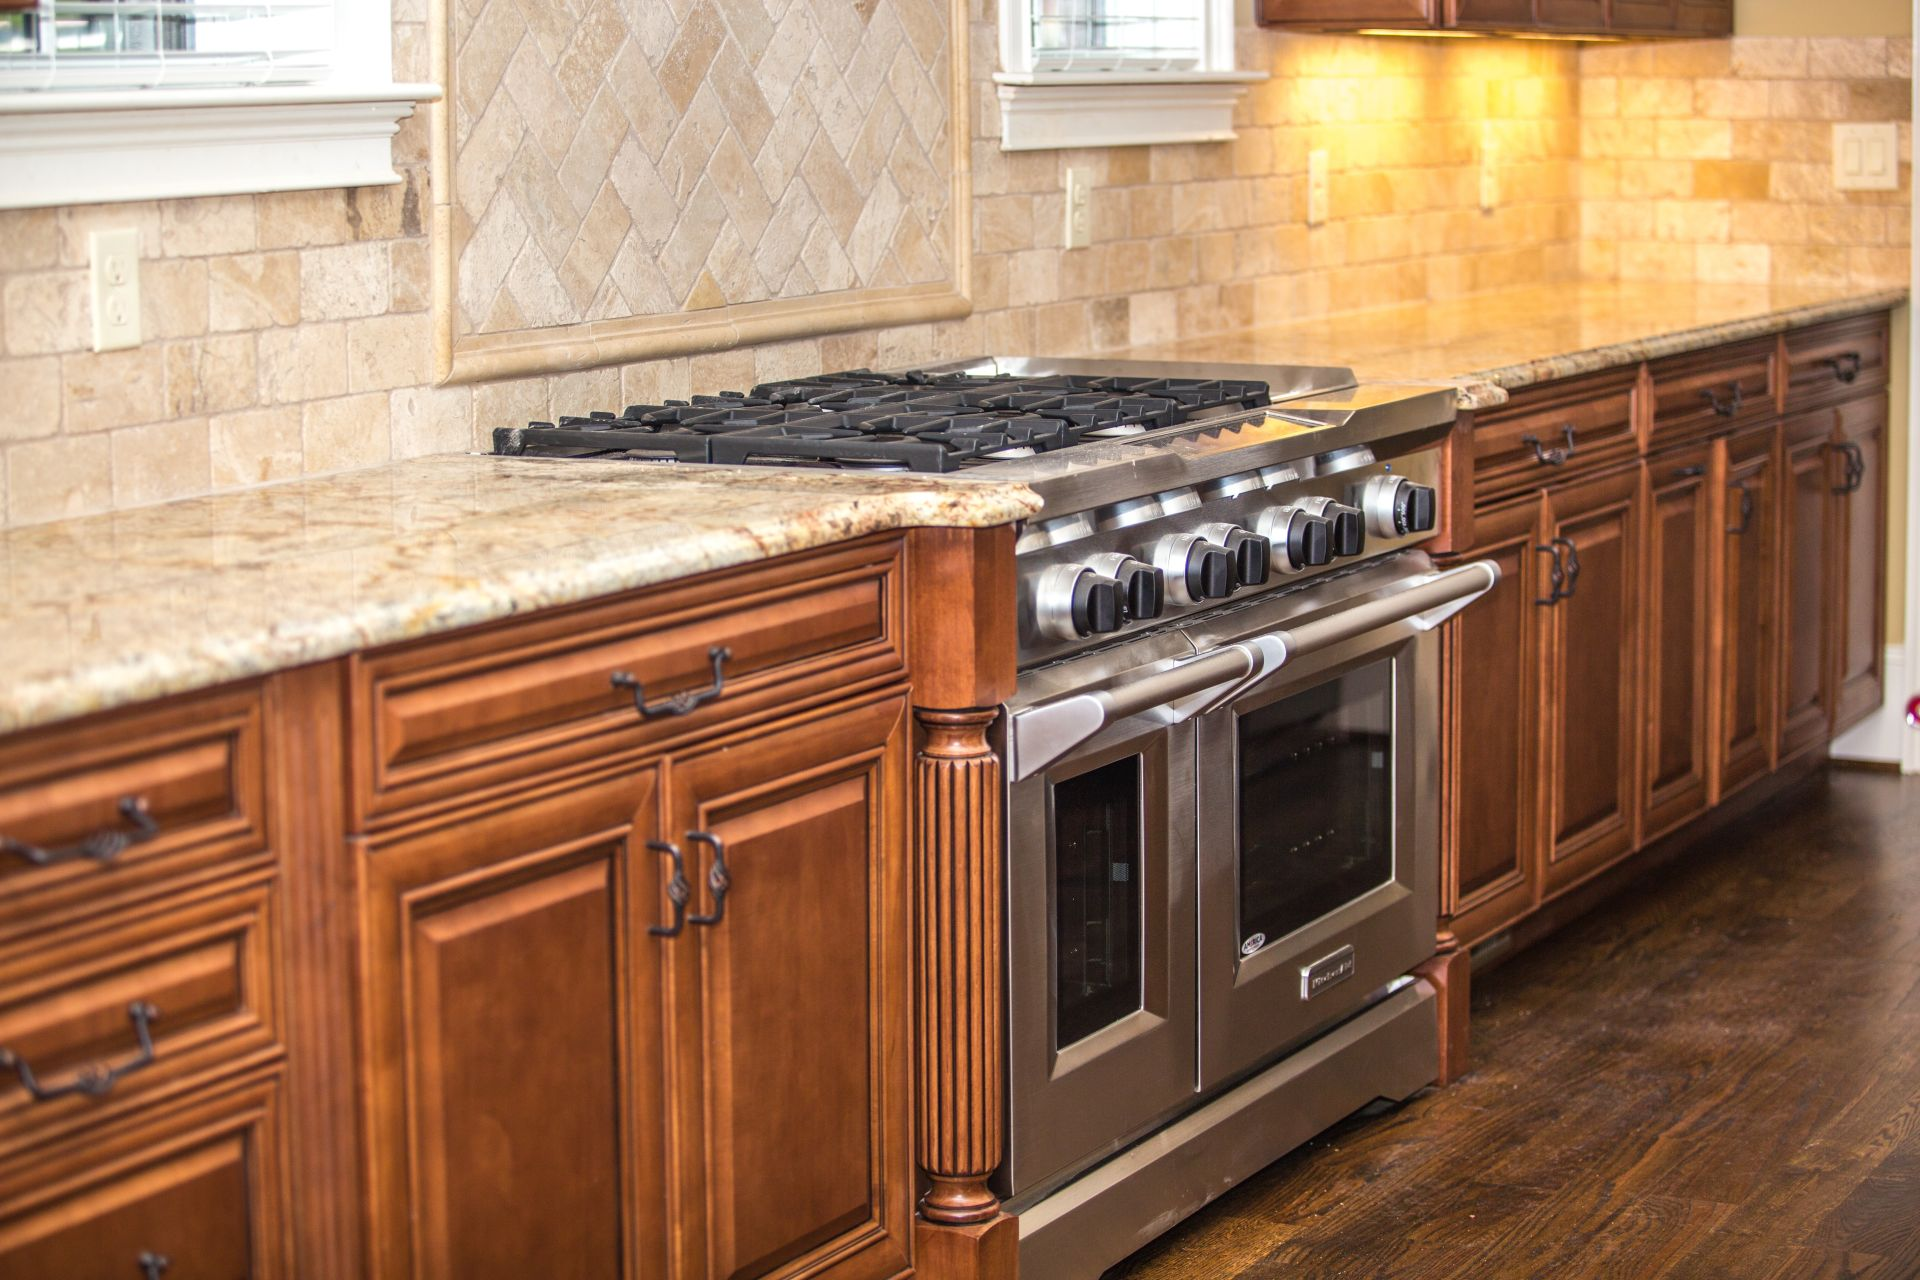 Should You Upgrade to a Luxury Kitchen?